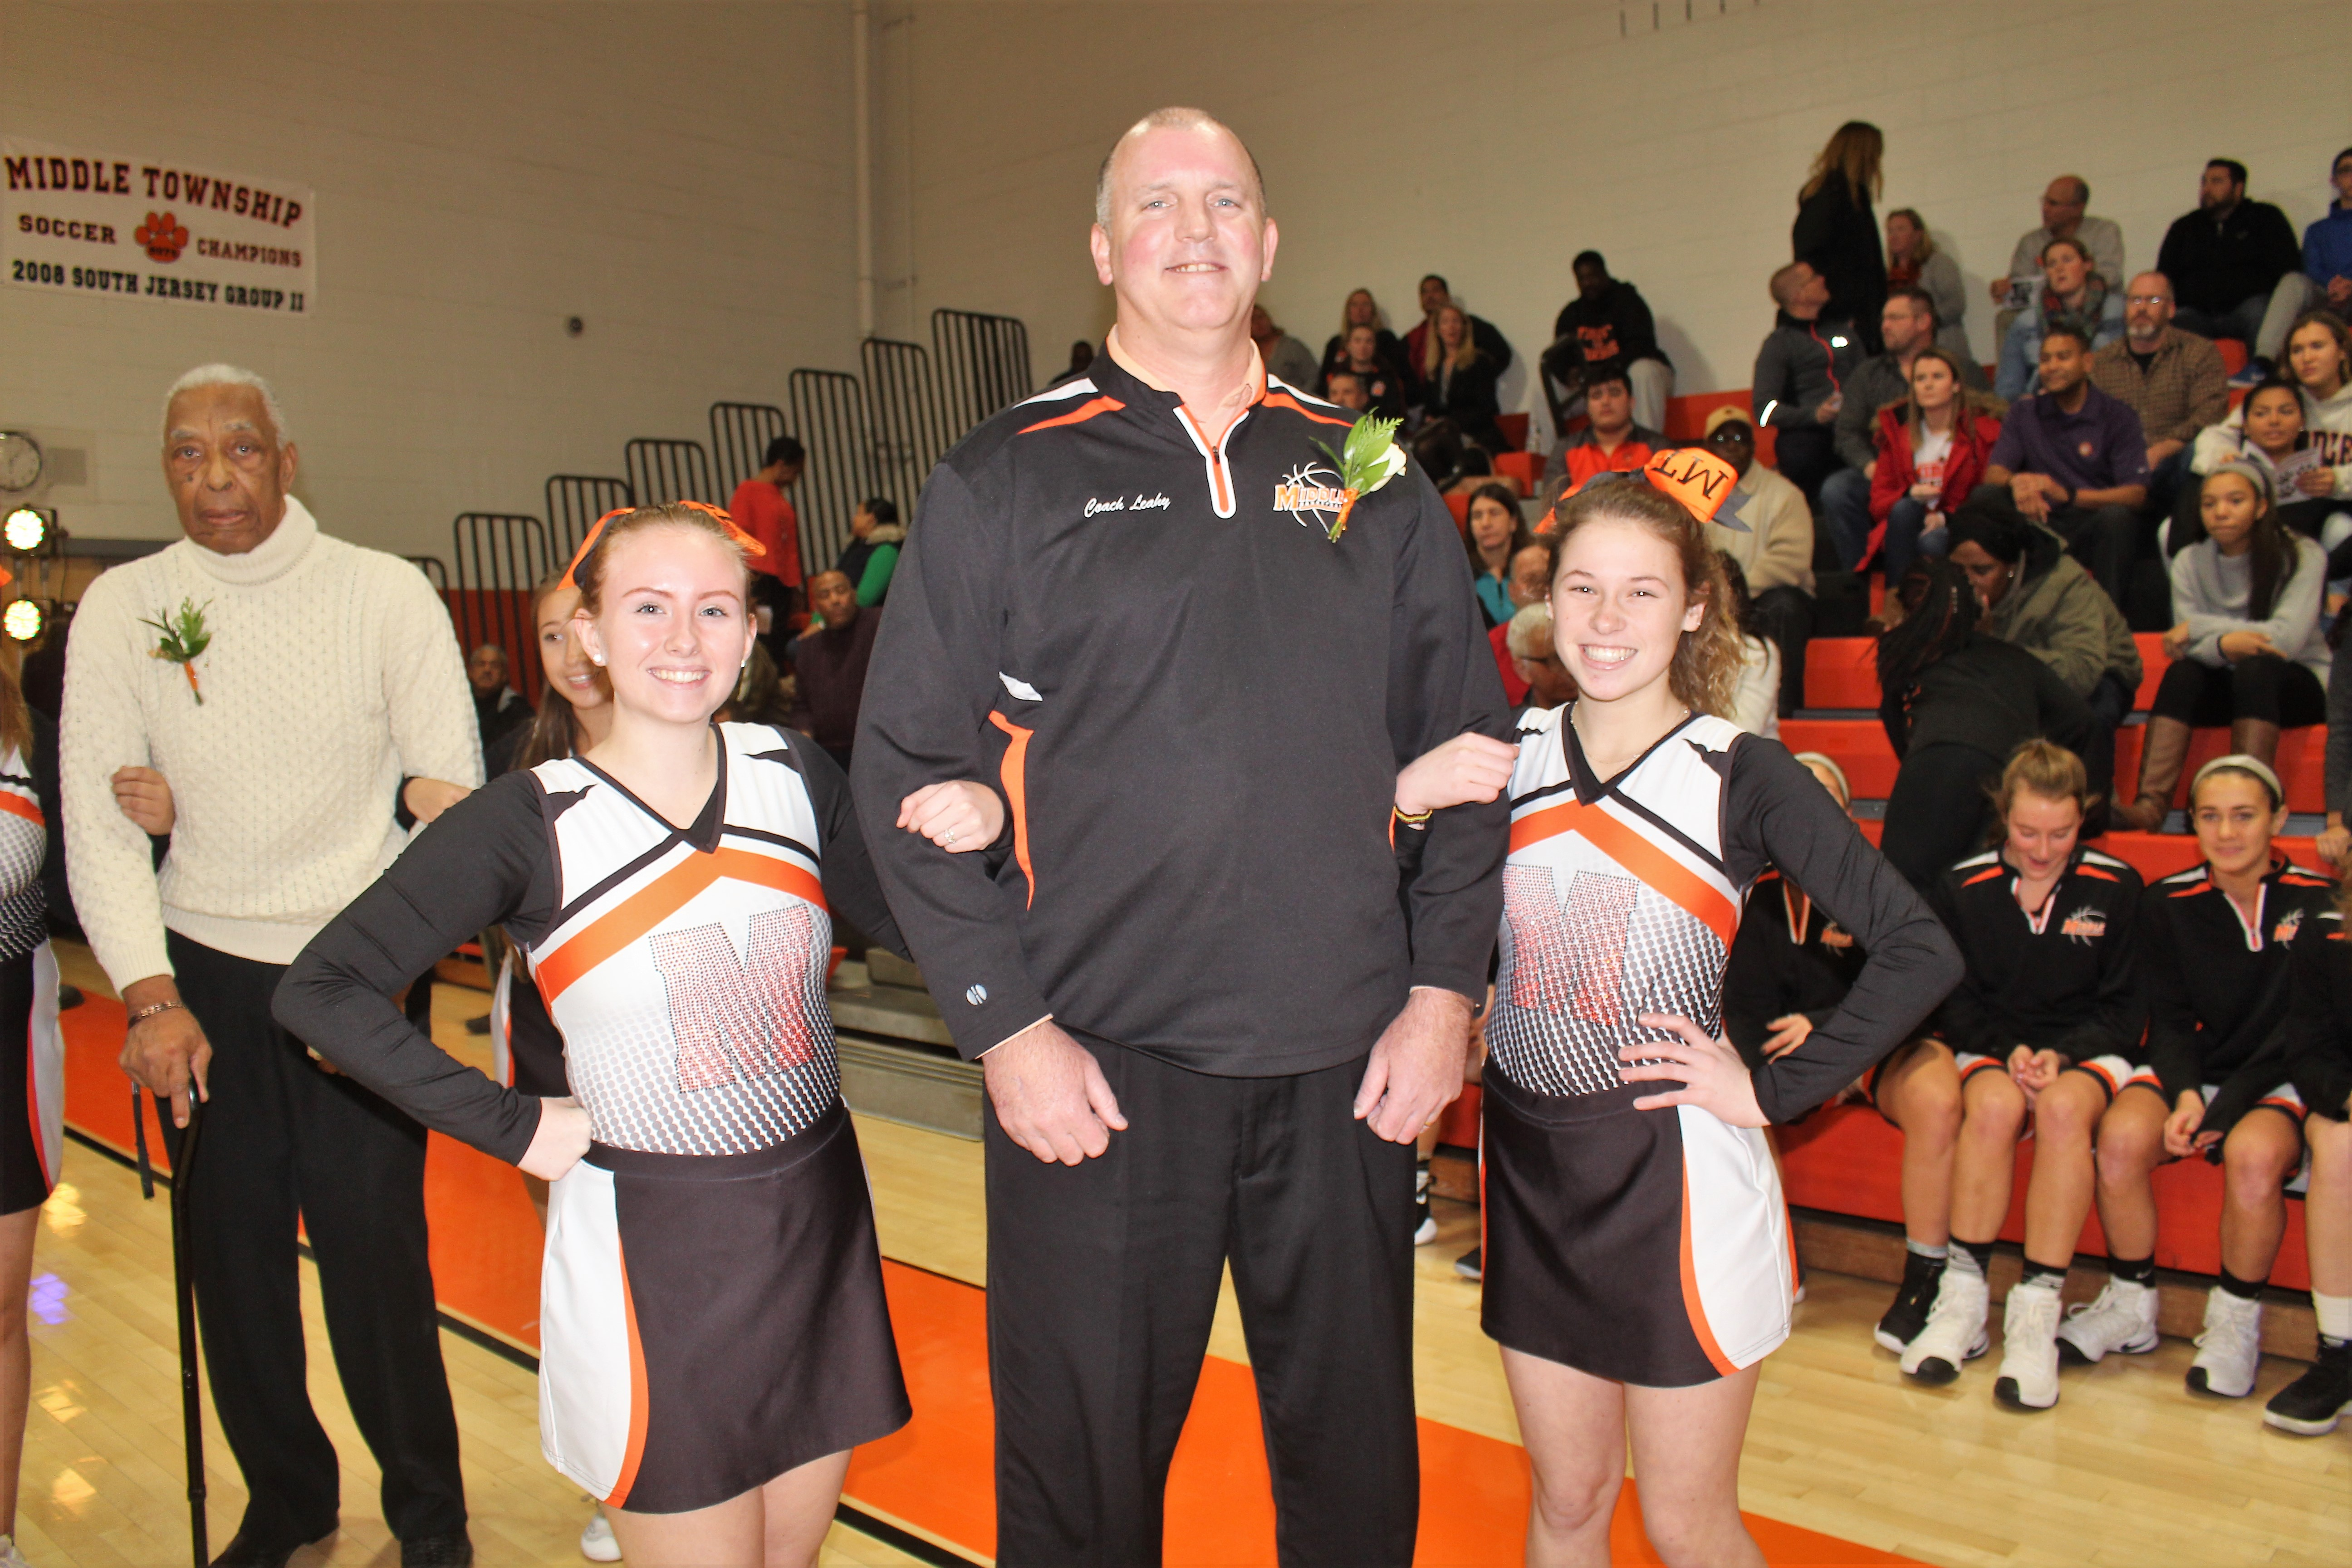 1eadf465a3 John Leahy is escorted by a pair of Middle Township High School  cheerleaders.